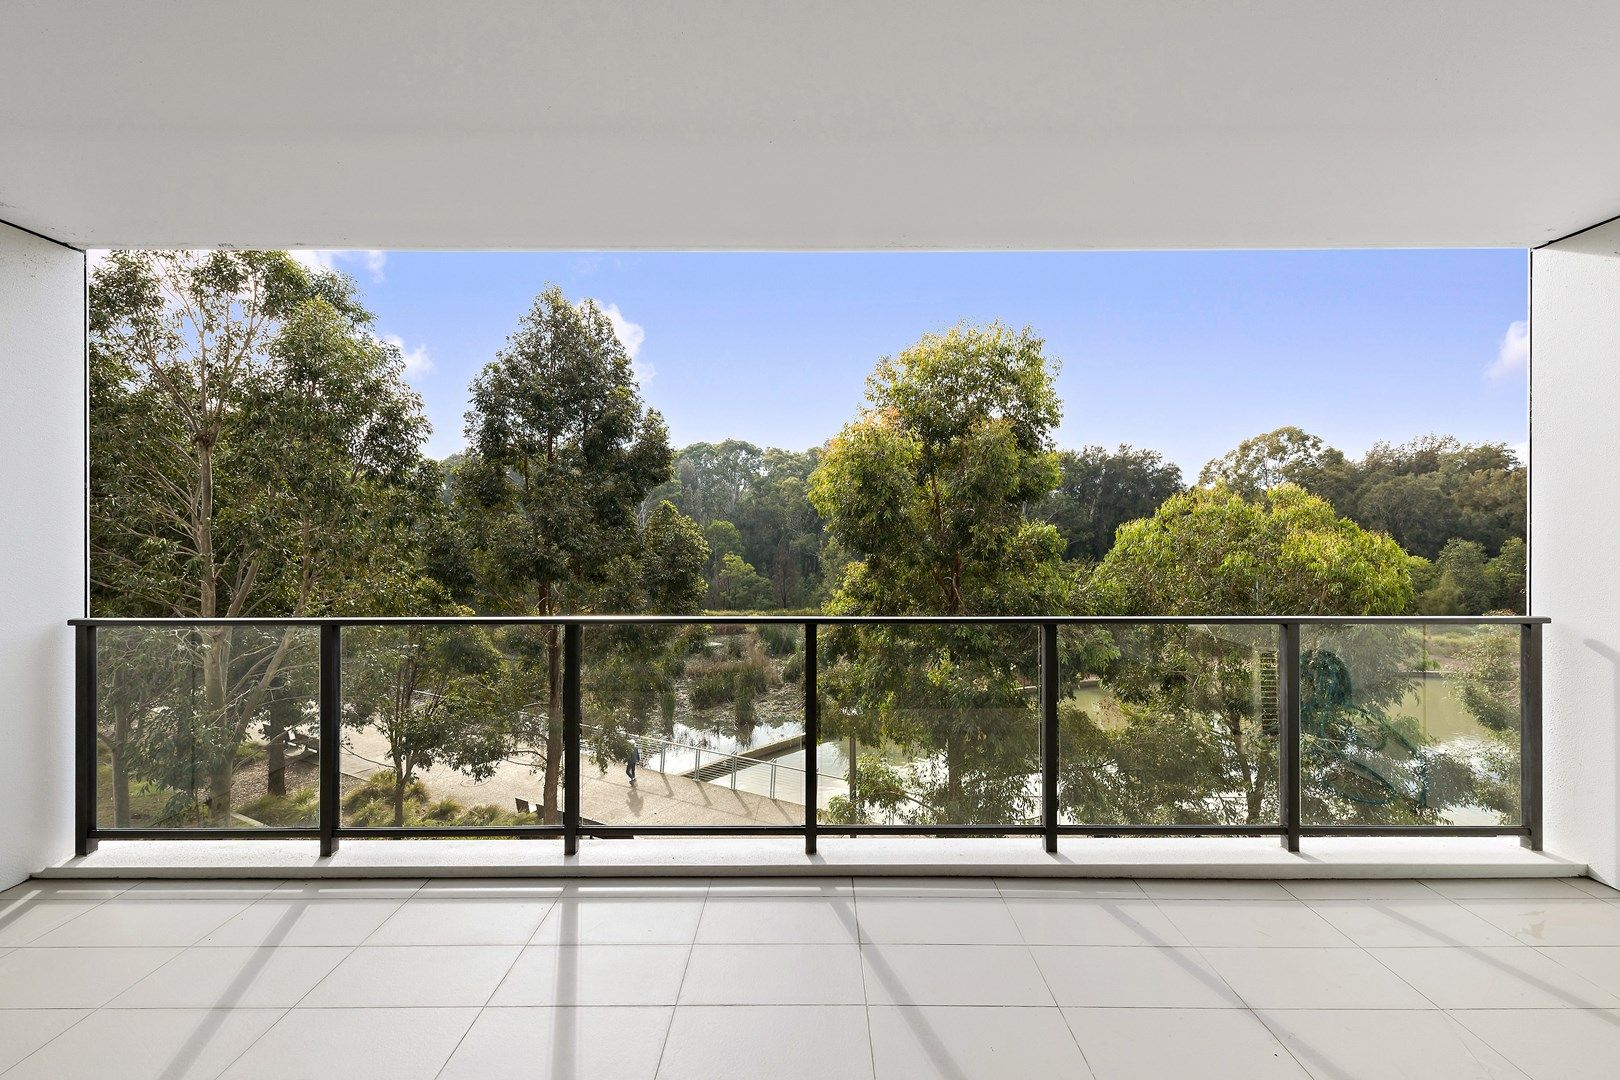 4/97 Caddies Boulevard, Rouse Hill NSW 2155, Image 1